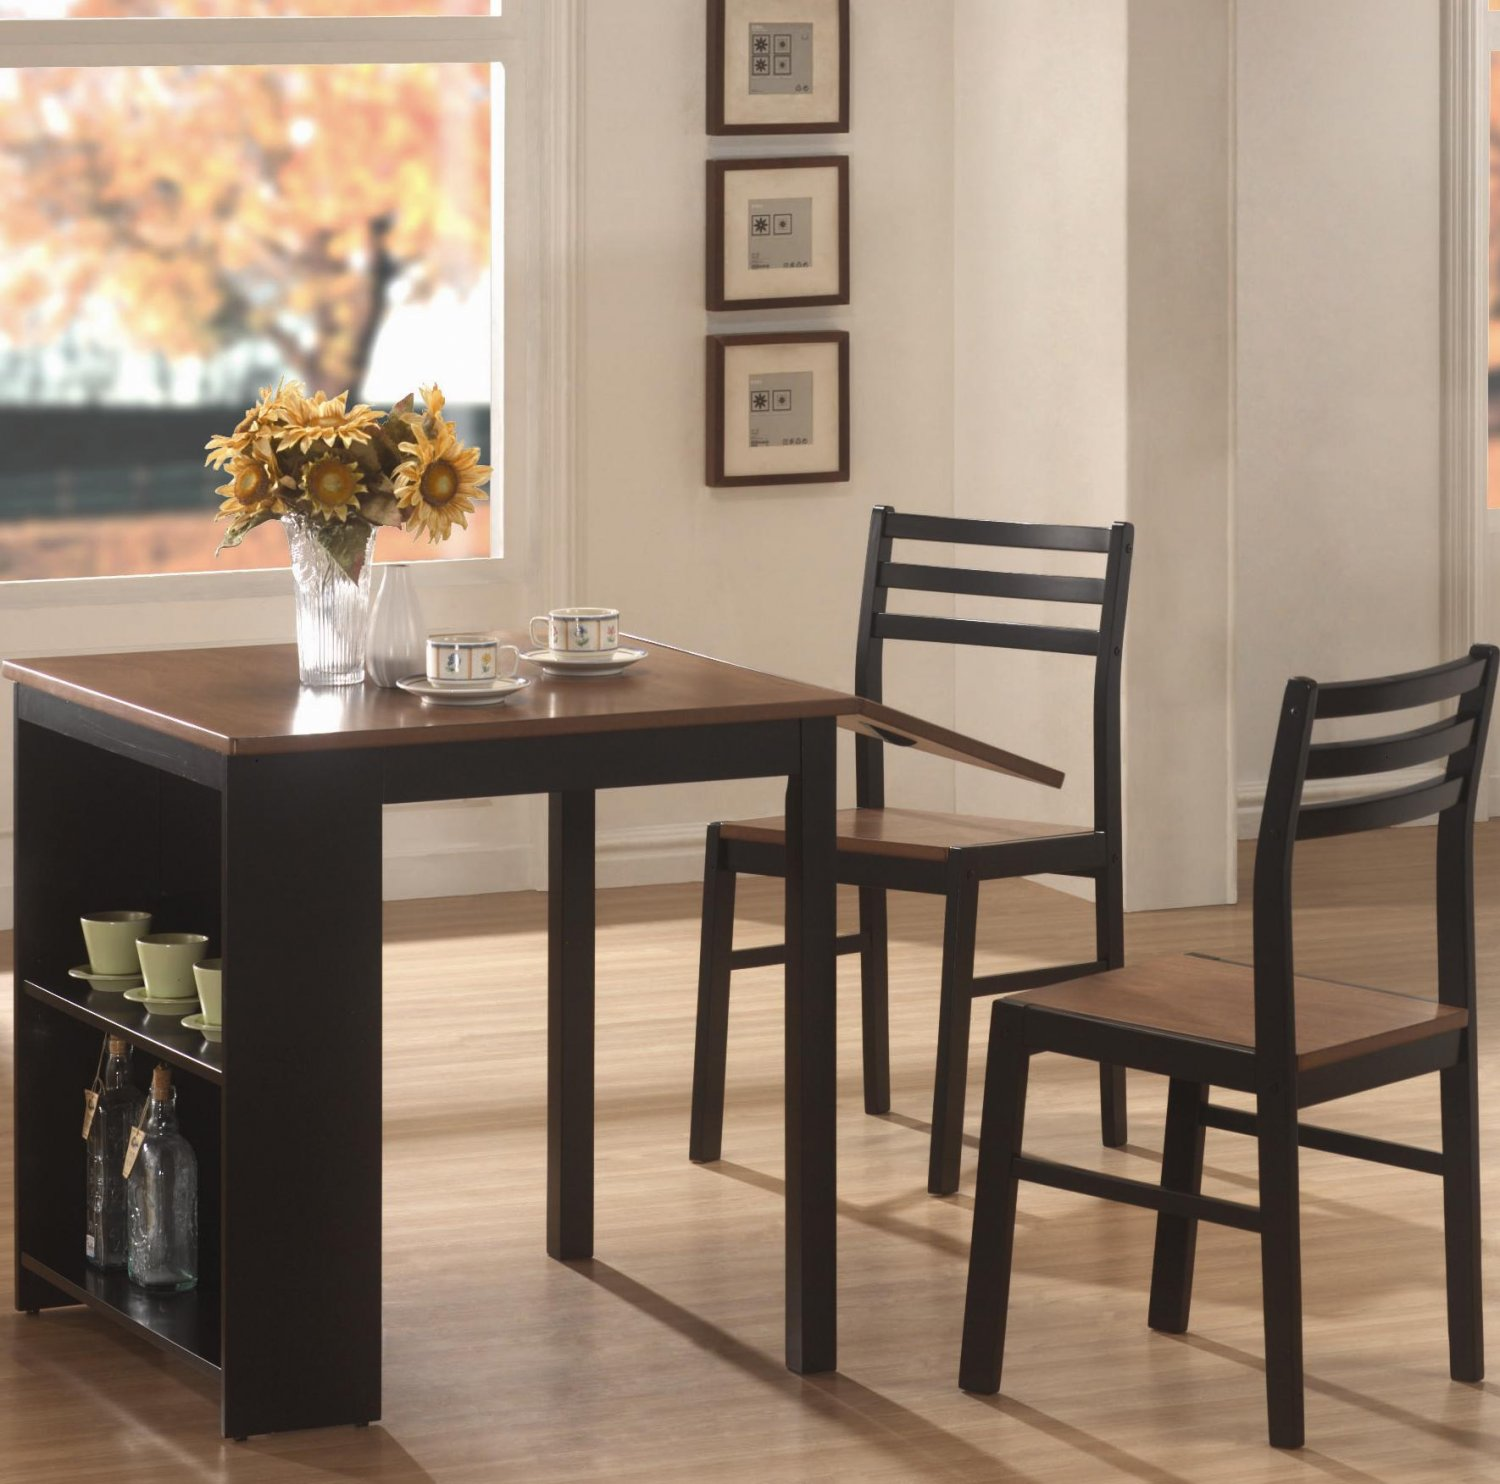 Dining Room Sets For Small Apartments: Modern Small Dining Table Set Breakfast Nook Wood